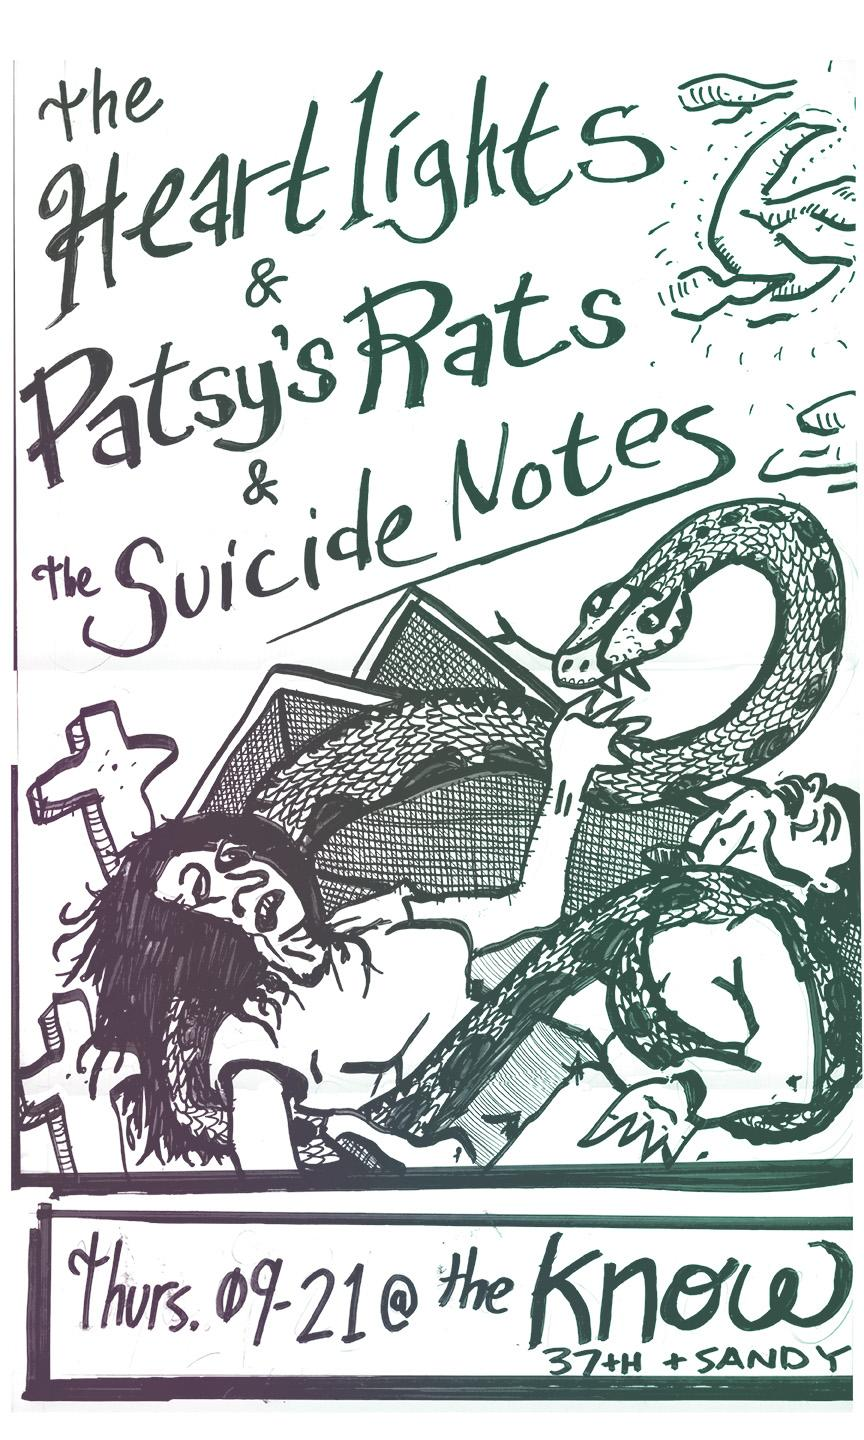 The Heartlights // Patsy's Rats // The Suicide Notes